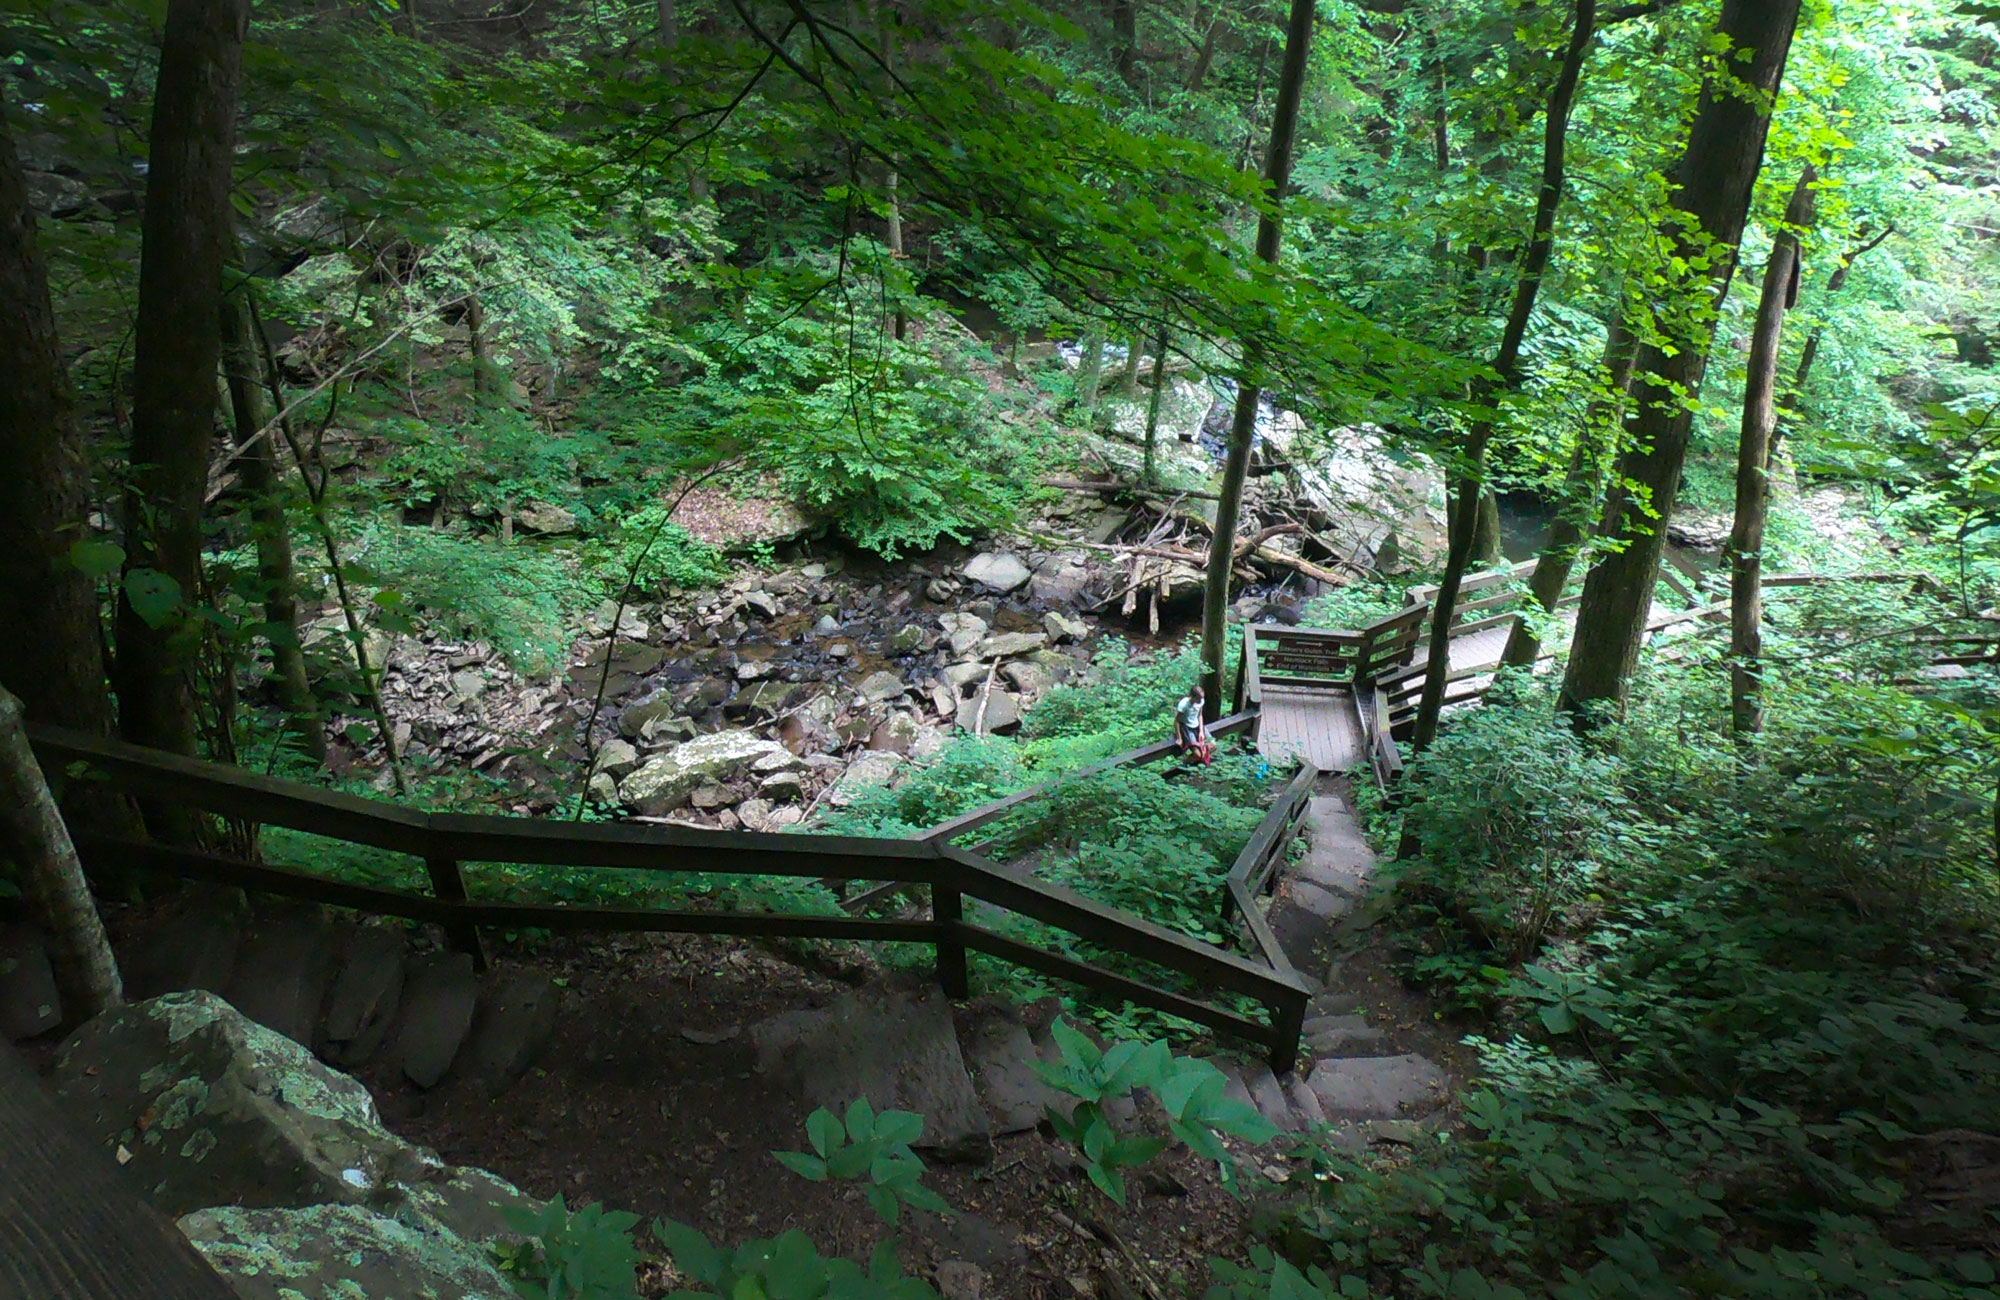 Hiking 600 steps to the Cherokee Falls and Hemlock Falls trail at Cloudland Canyon State Park, Georgia